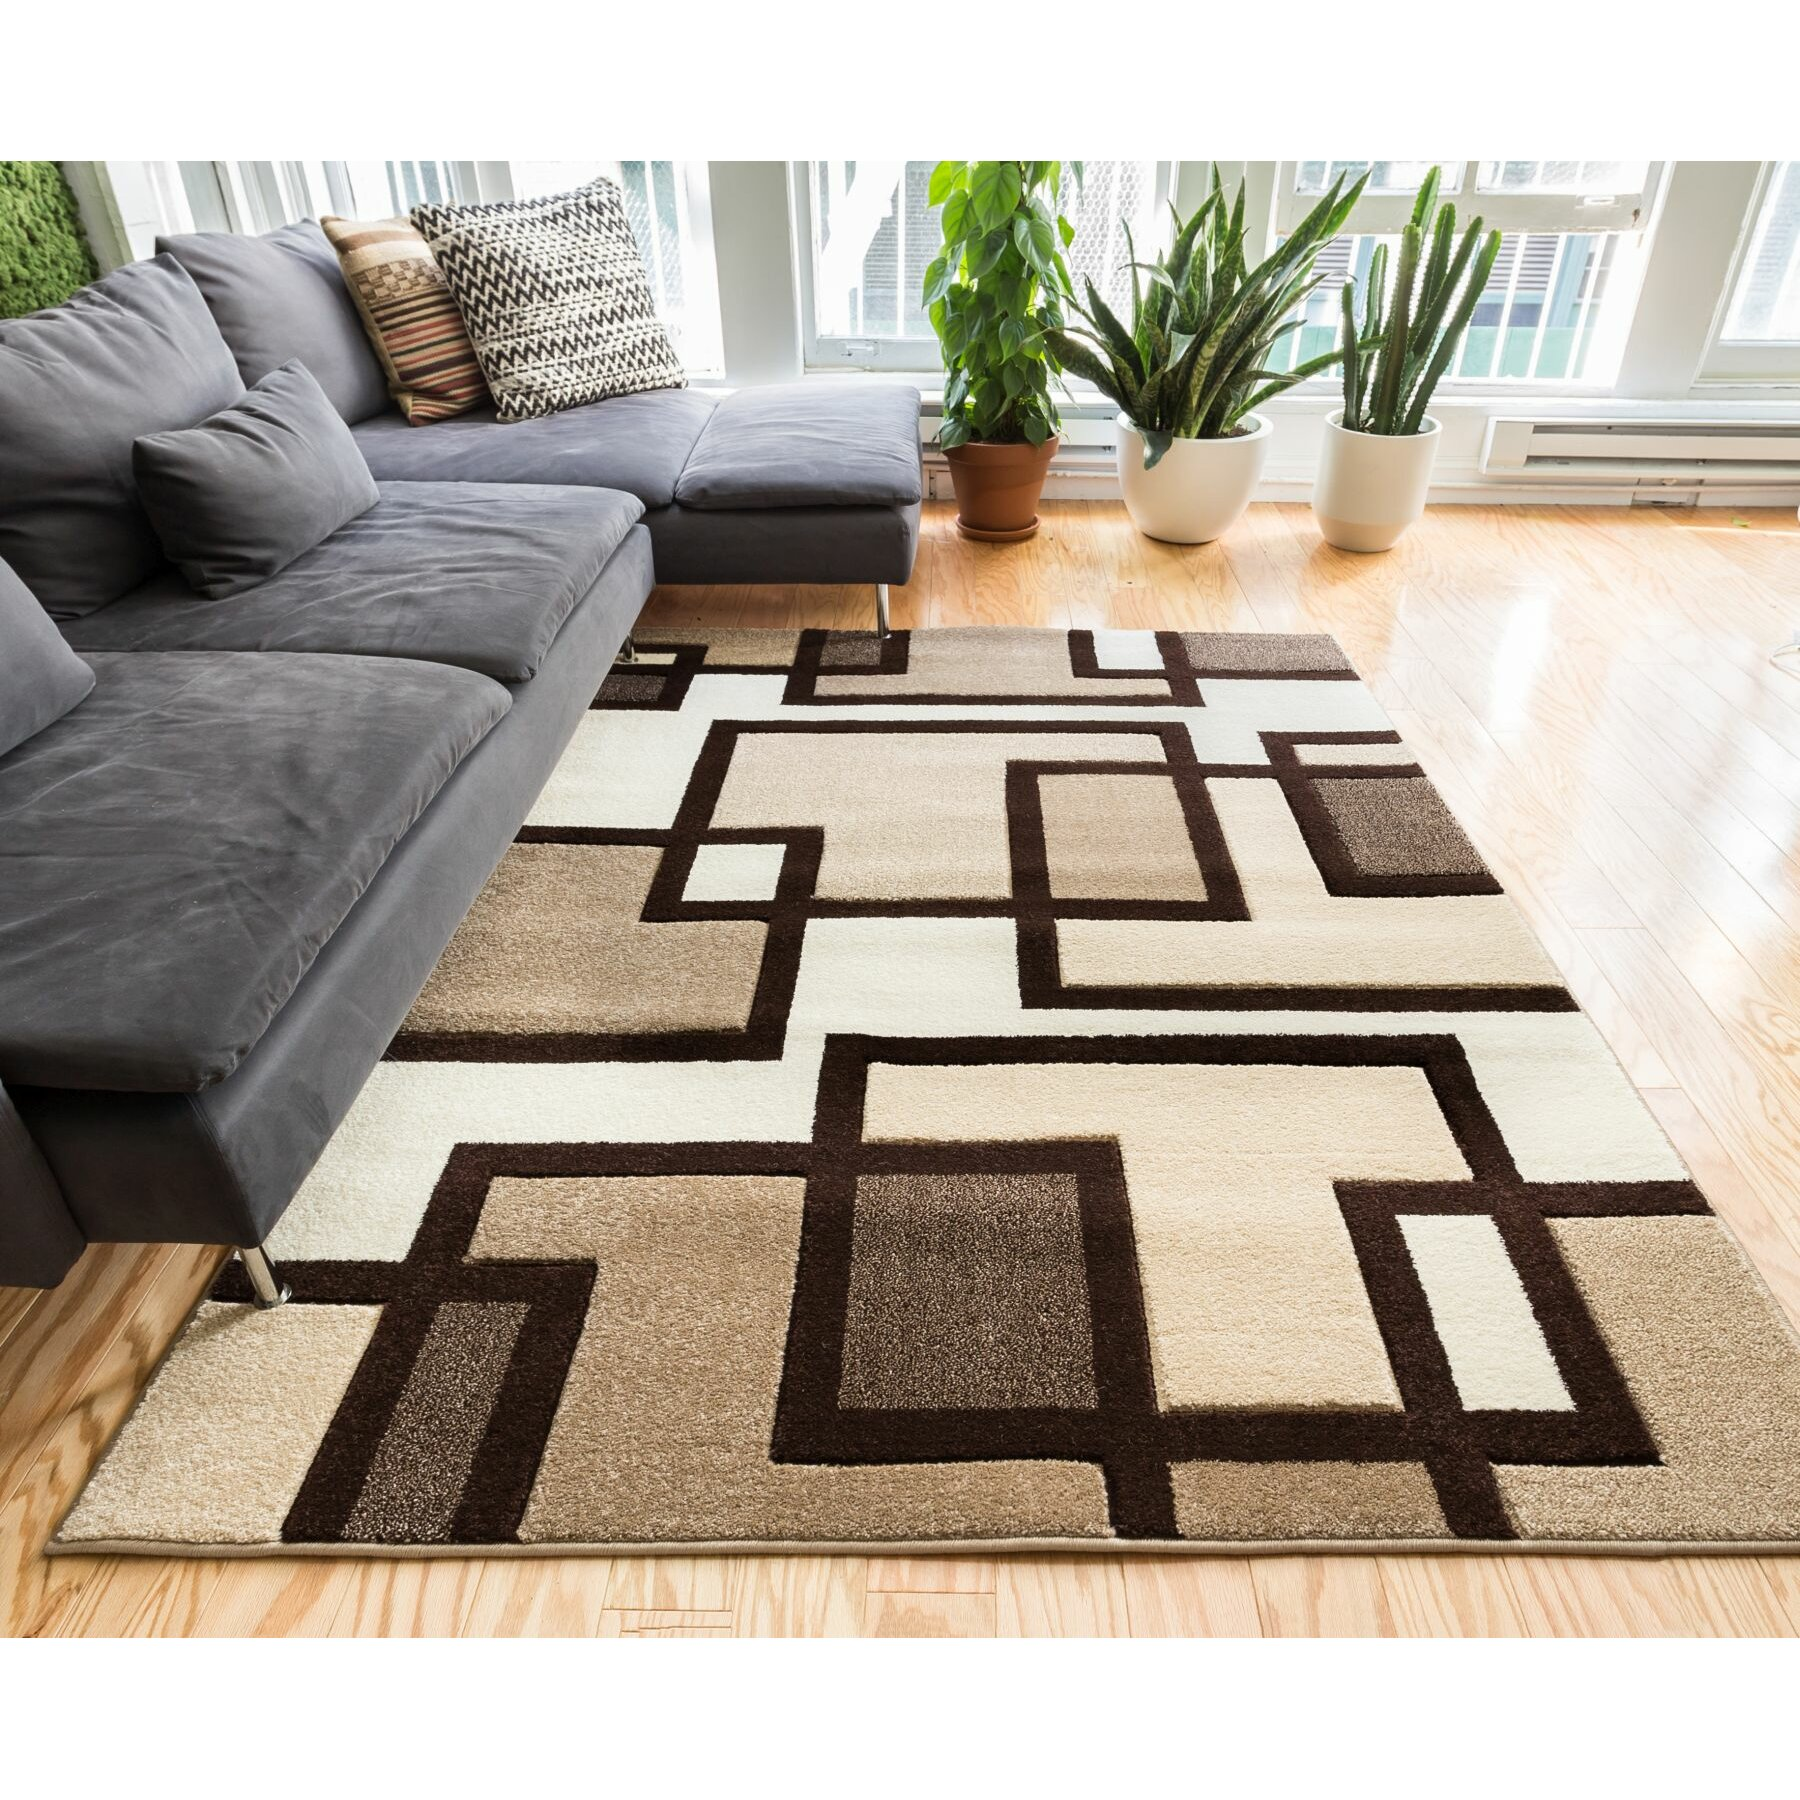 Well Woven Ruby Imagination Squares Contemporary Area Rug